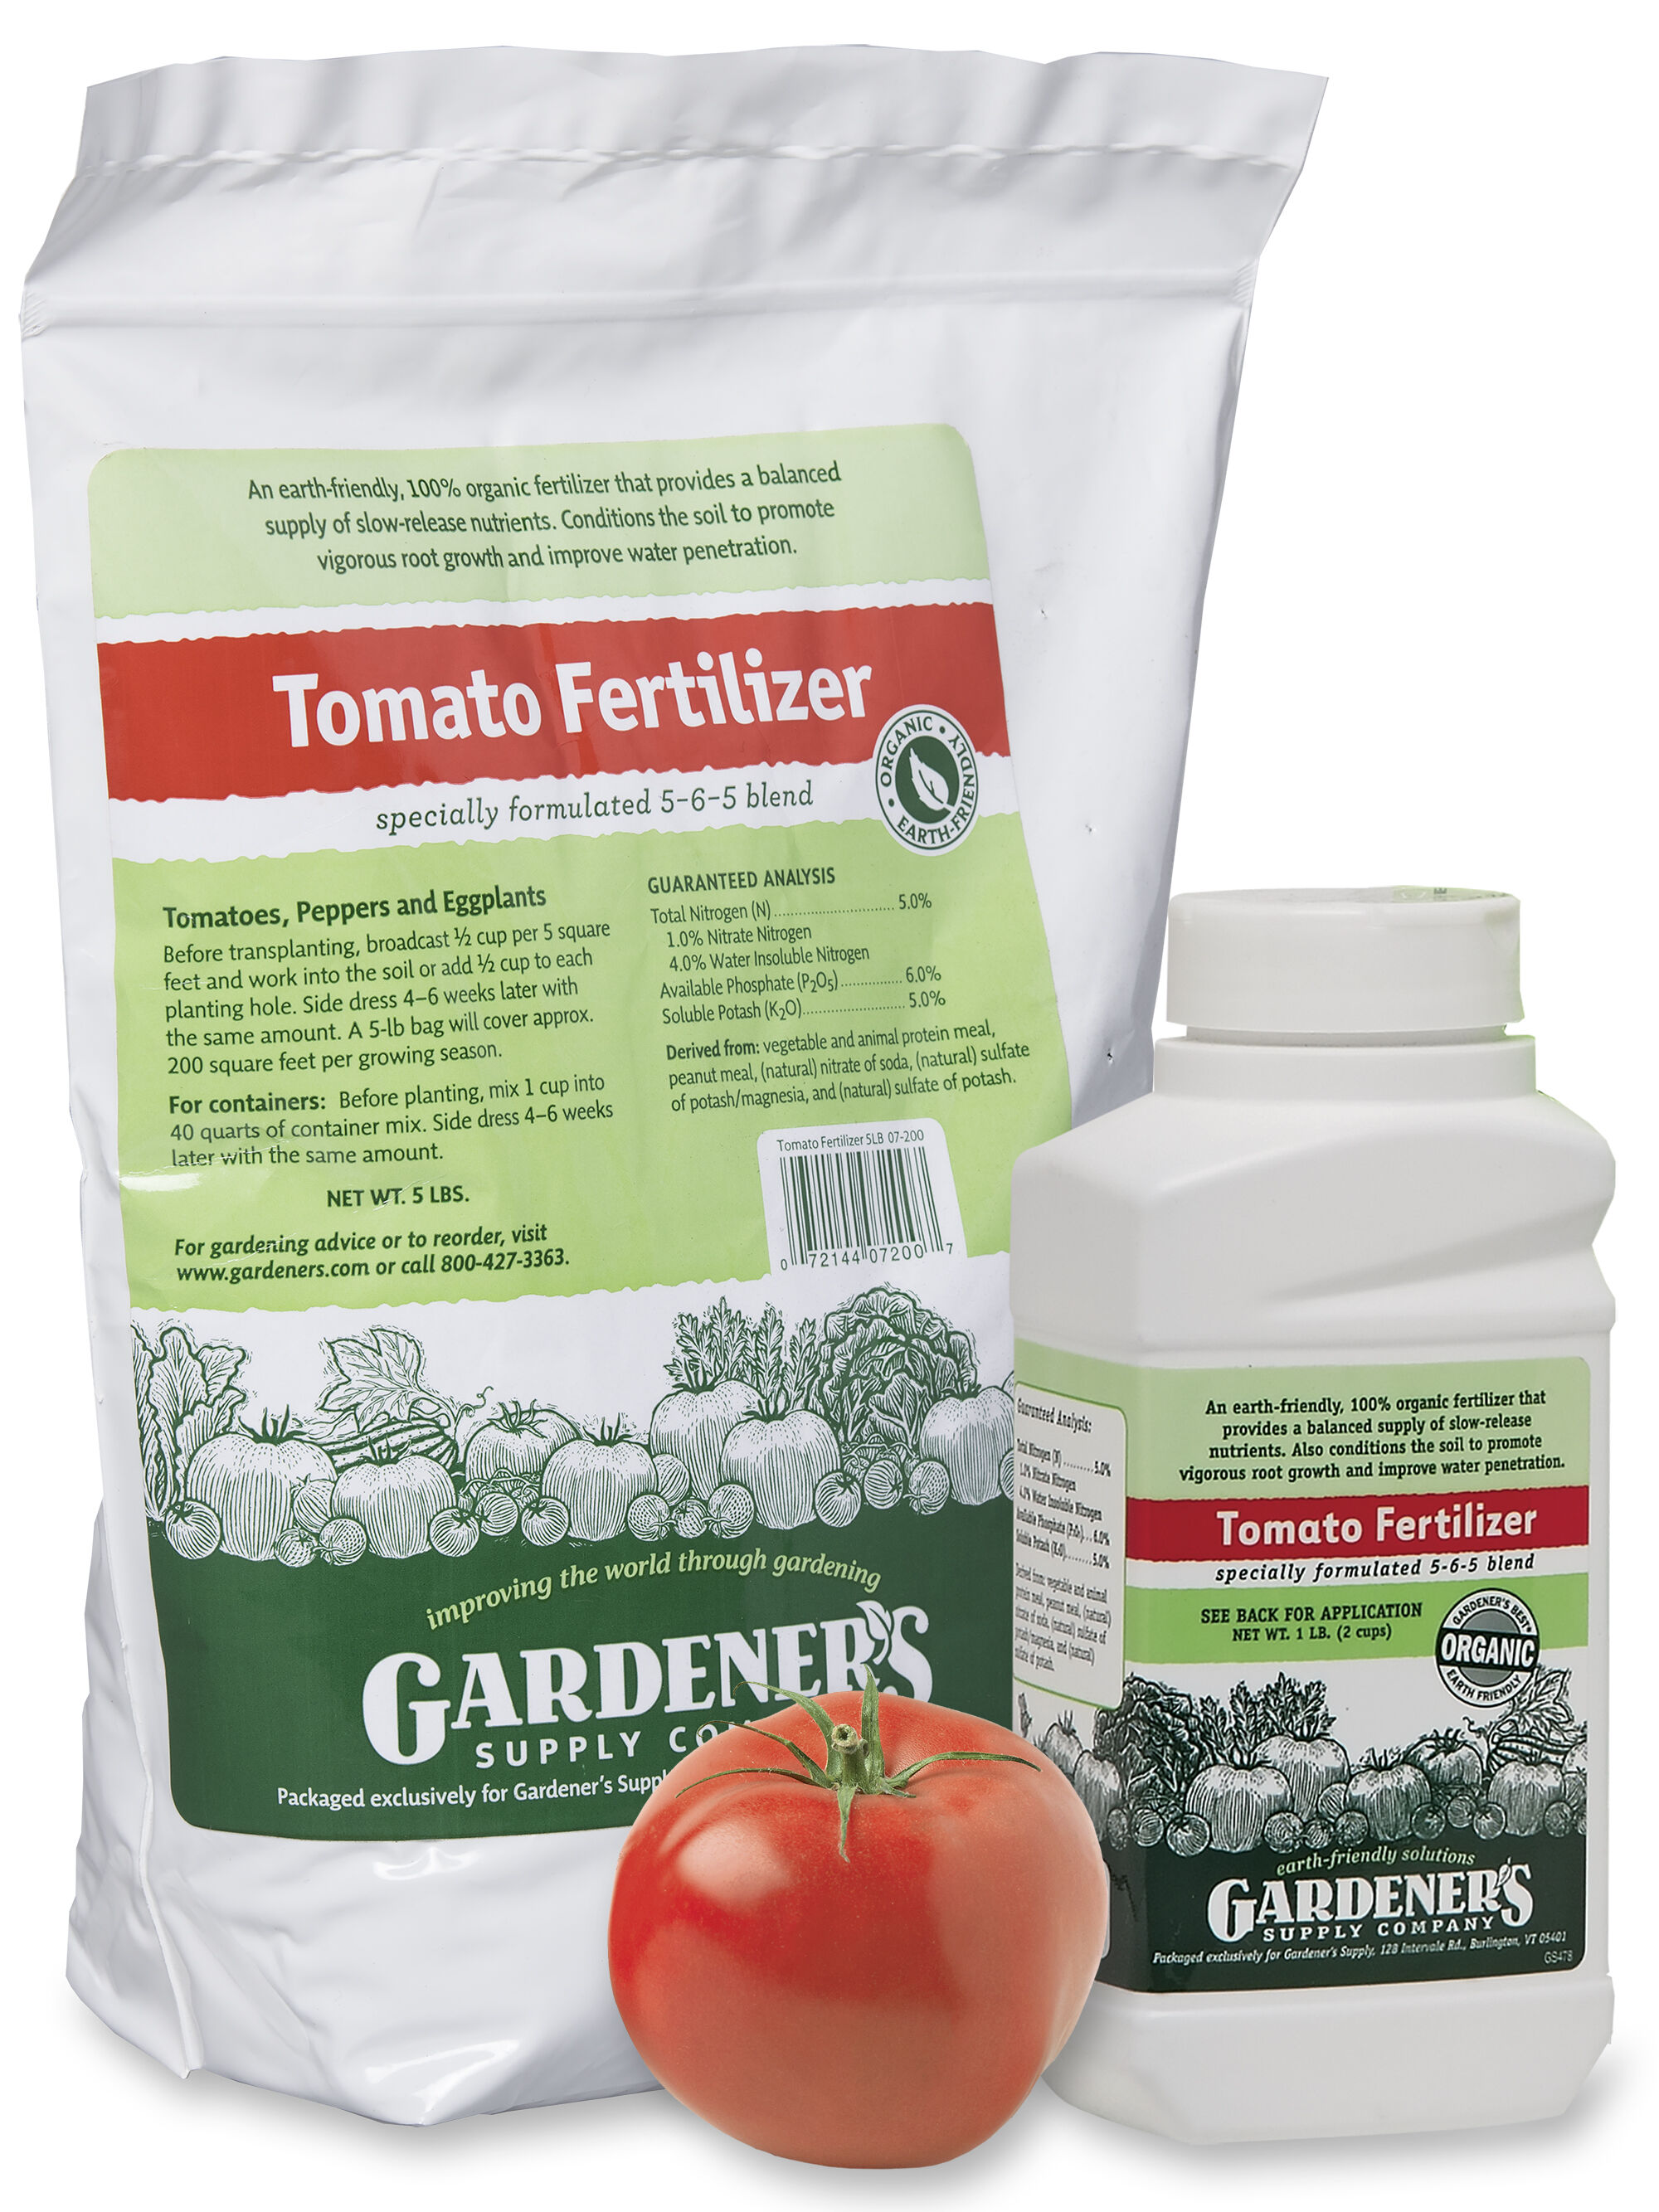 how genetic engineering differs from traditional plant breeding gsc organic tomato fertilizer